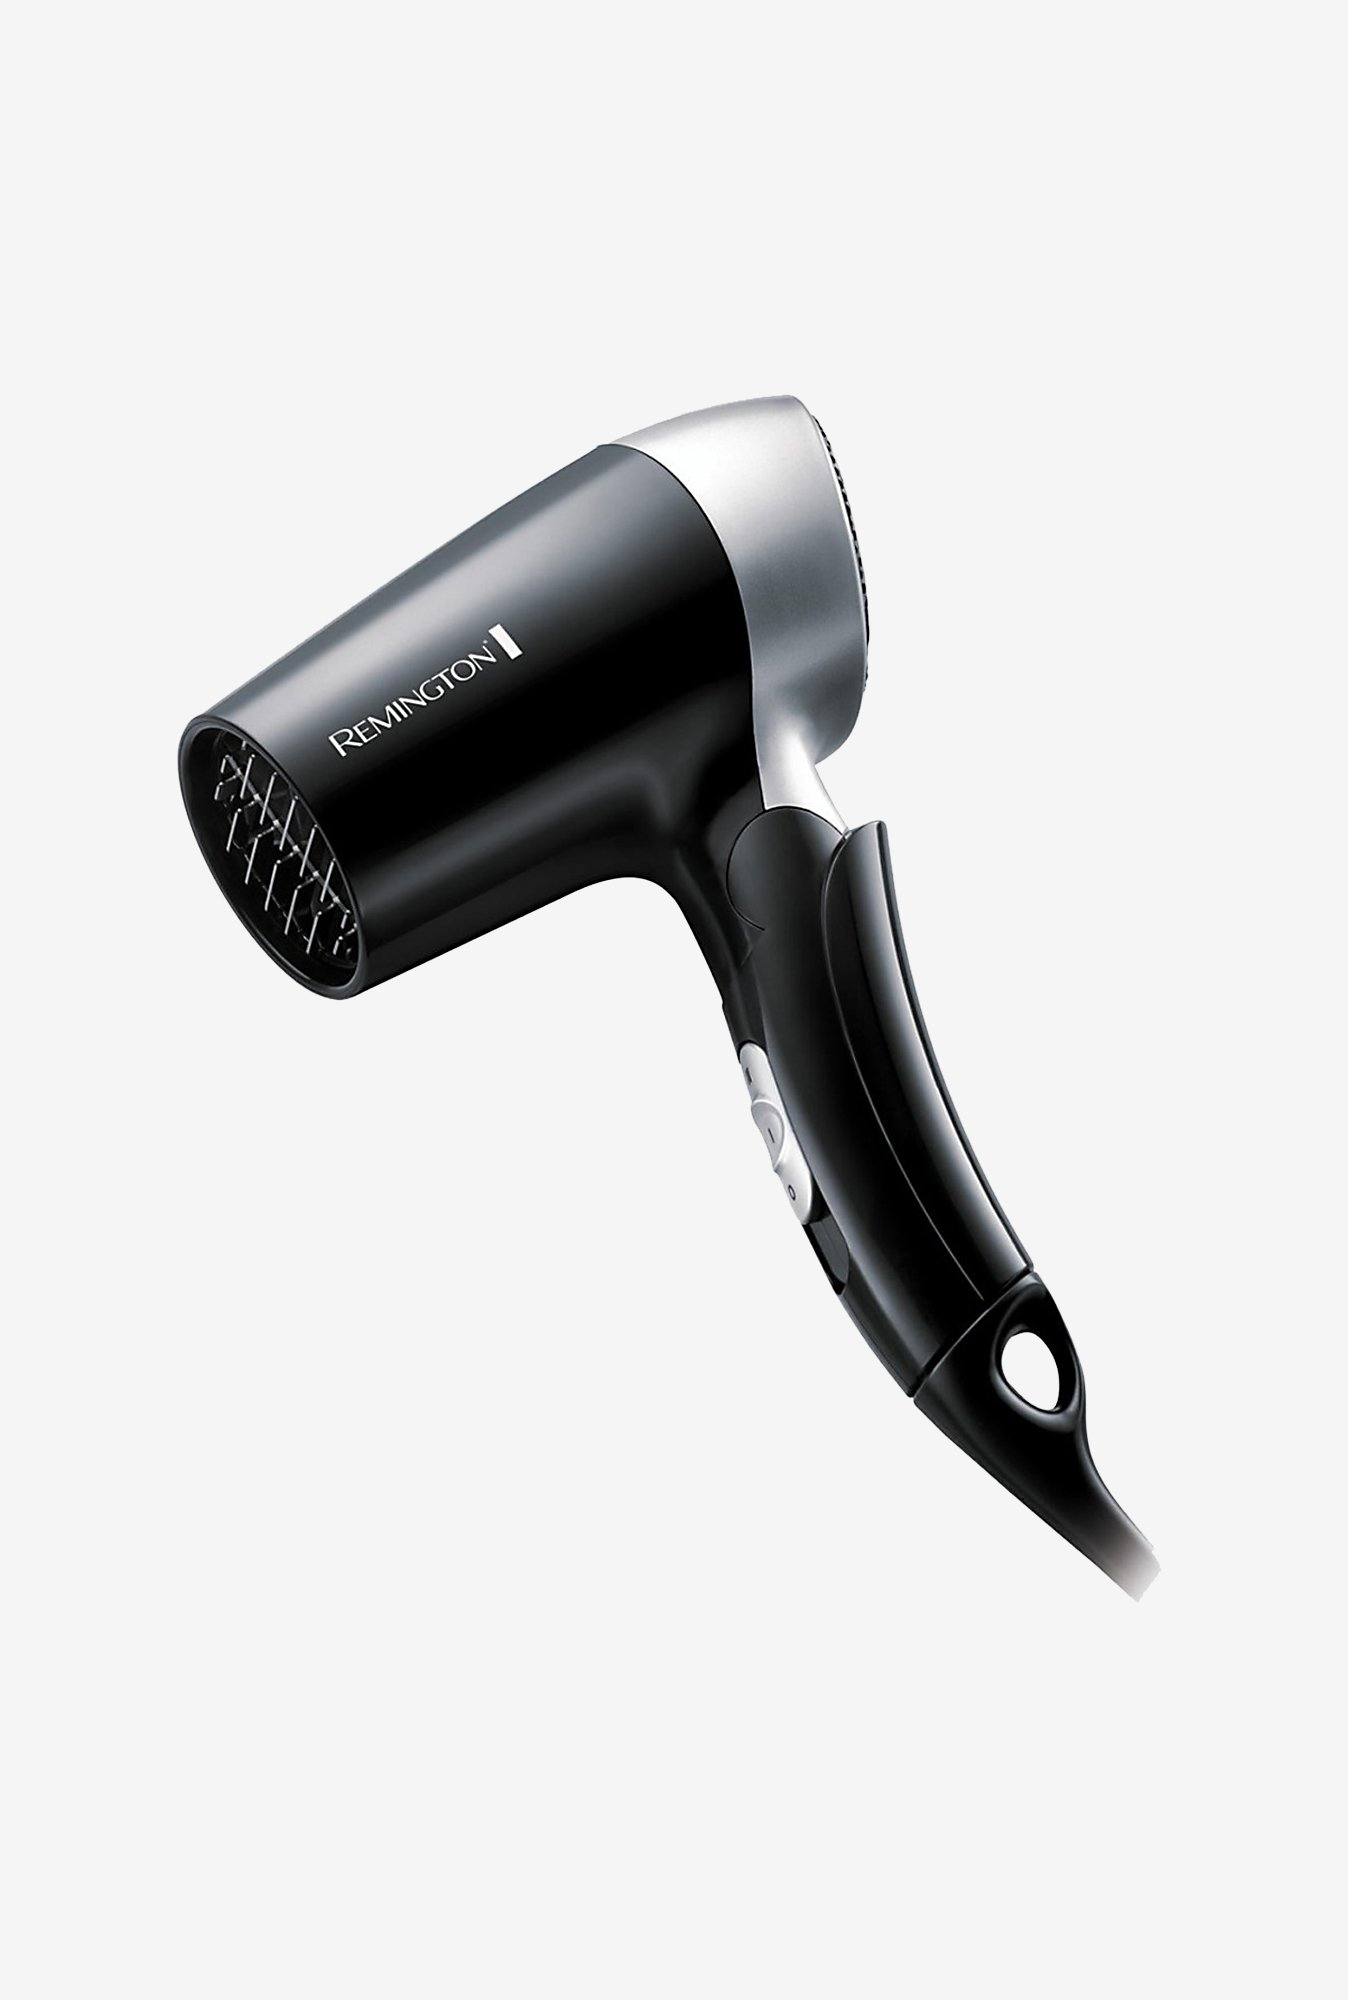 Remington Travel Dryer (1400 D2400 Hair Dryer (Black)